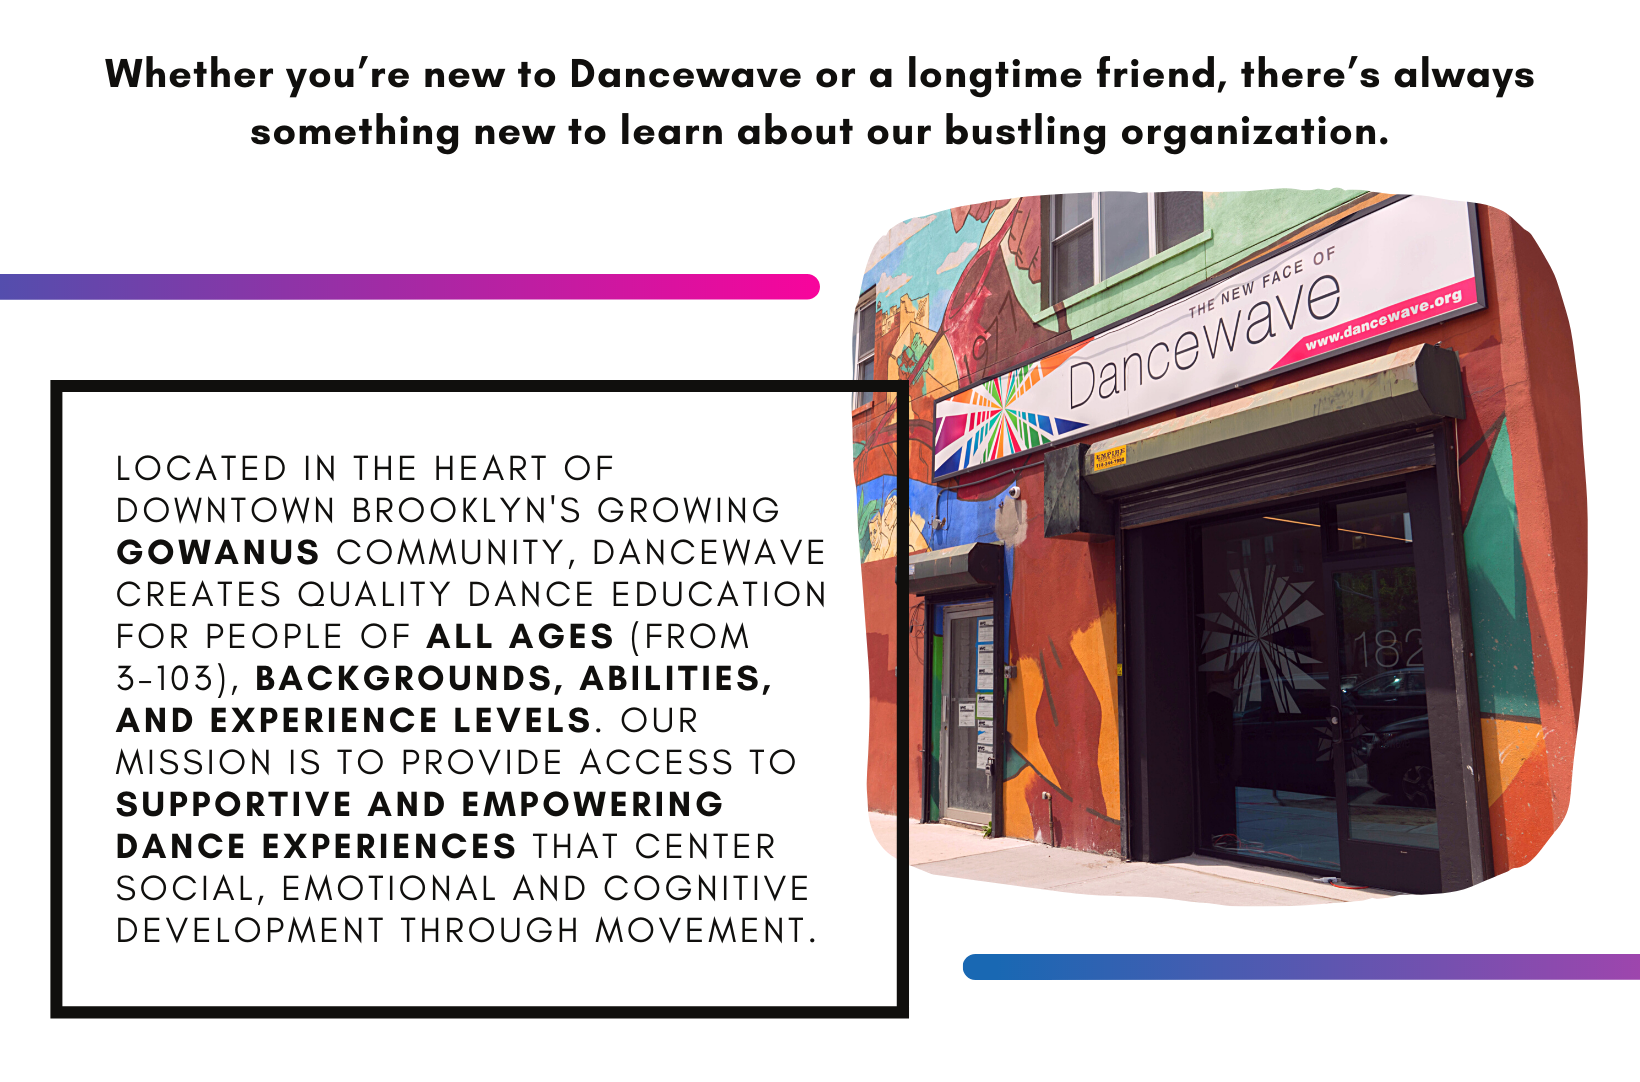 Located in the heart of downtown Brooklyn's growing Gowanus community, Dancewave creates quality dance education for people of all ages (from 3-103), backgrounds, abilities, and experience levels. Our mission is to provide access to supportive and empowering dance experiences that center social, emotional and cognitive development through movement.